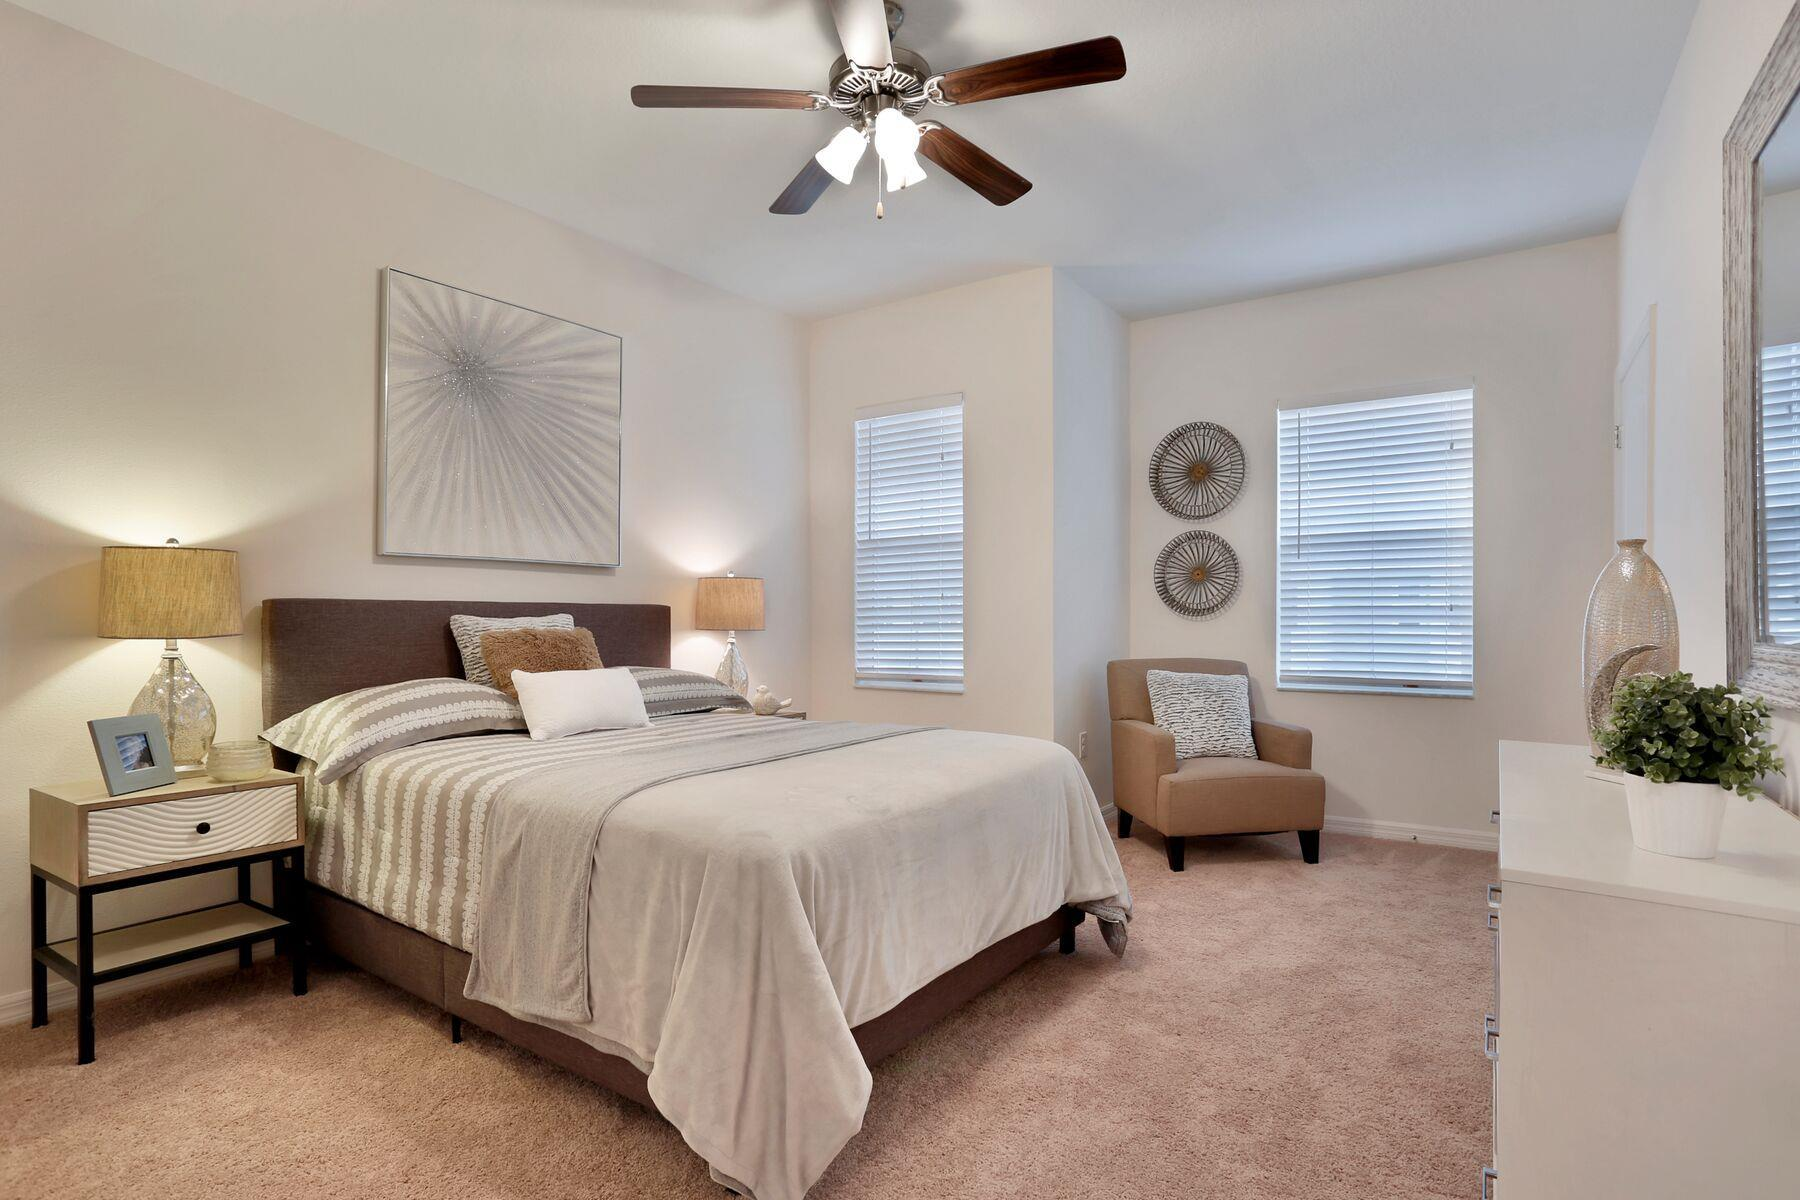 Bedroom featured in the Bimini By LGI Homes in Orlando, FL